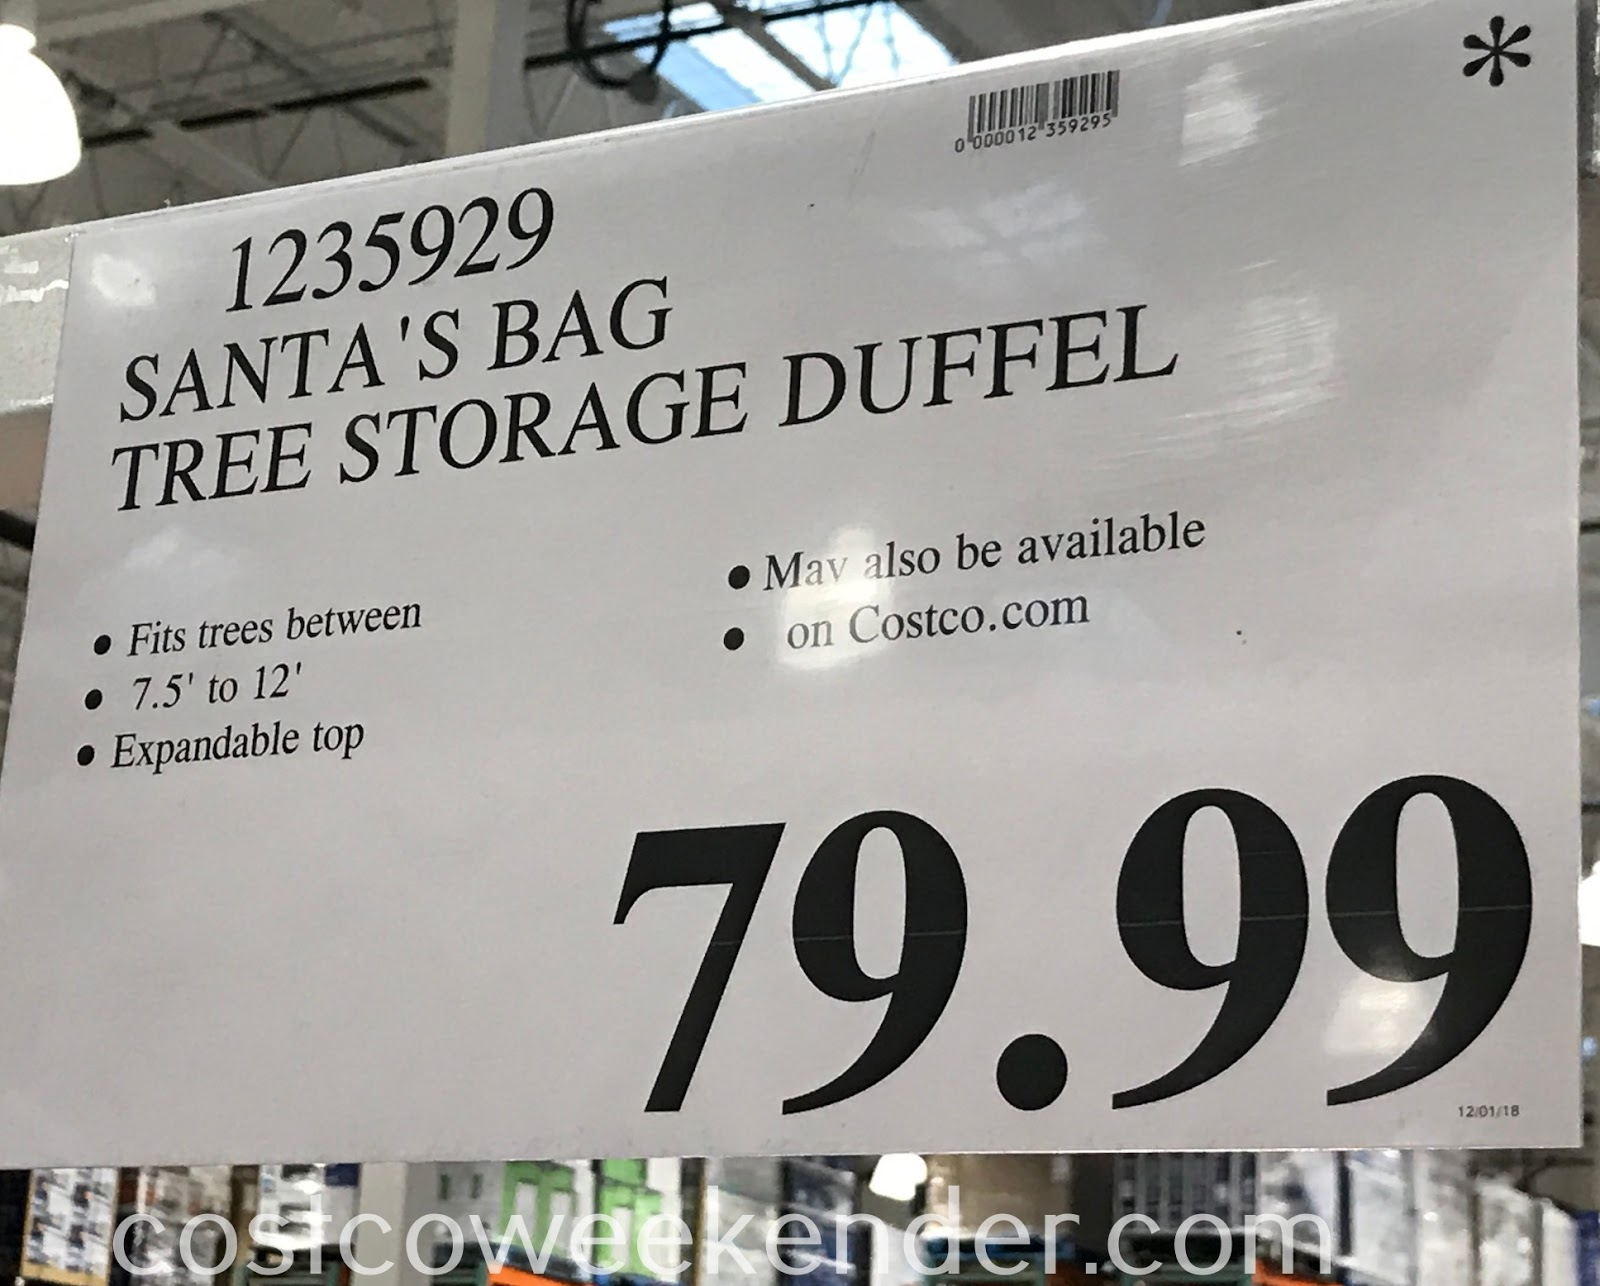 Deal for the Santa's Bag Tree Storage Duffel at Costco